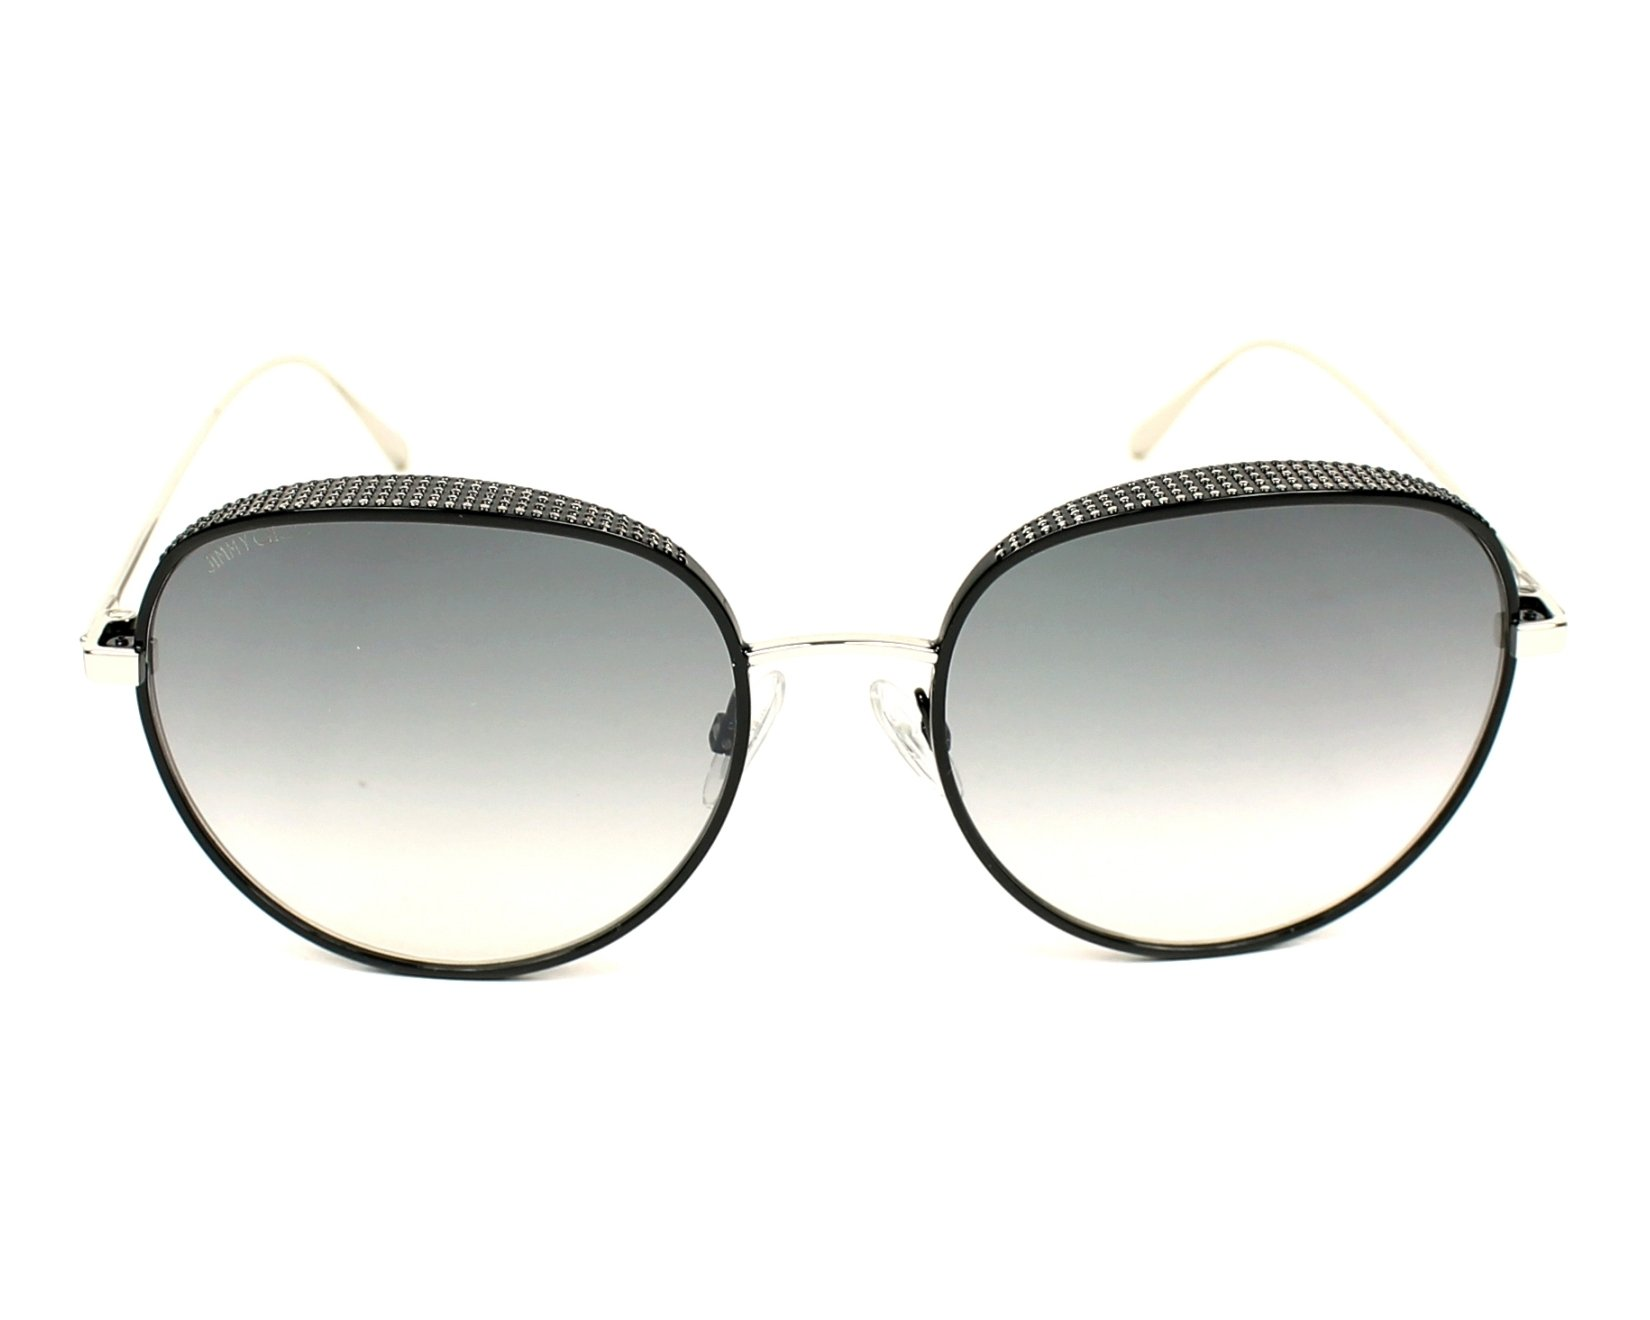 66752b02344 thumbnail Sunglasses Jimmy Choo ELLO-S JIN IC - Silver Black front view